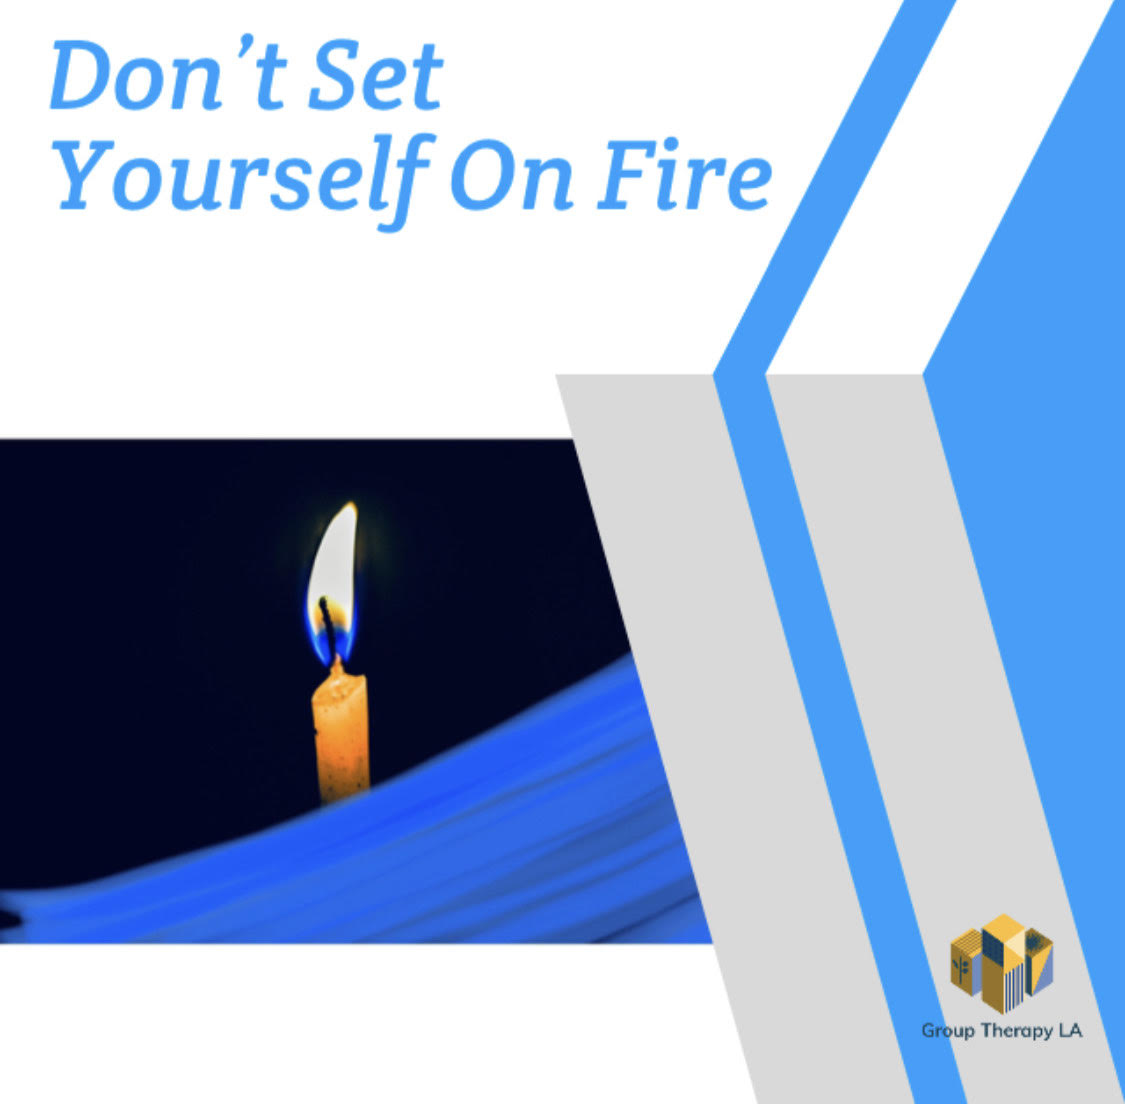 Don't set yourself on fire